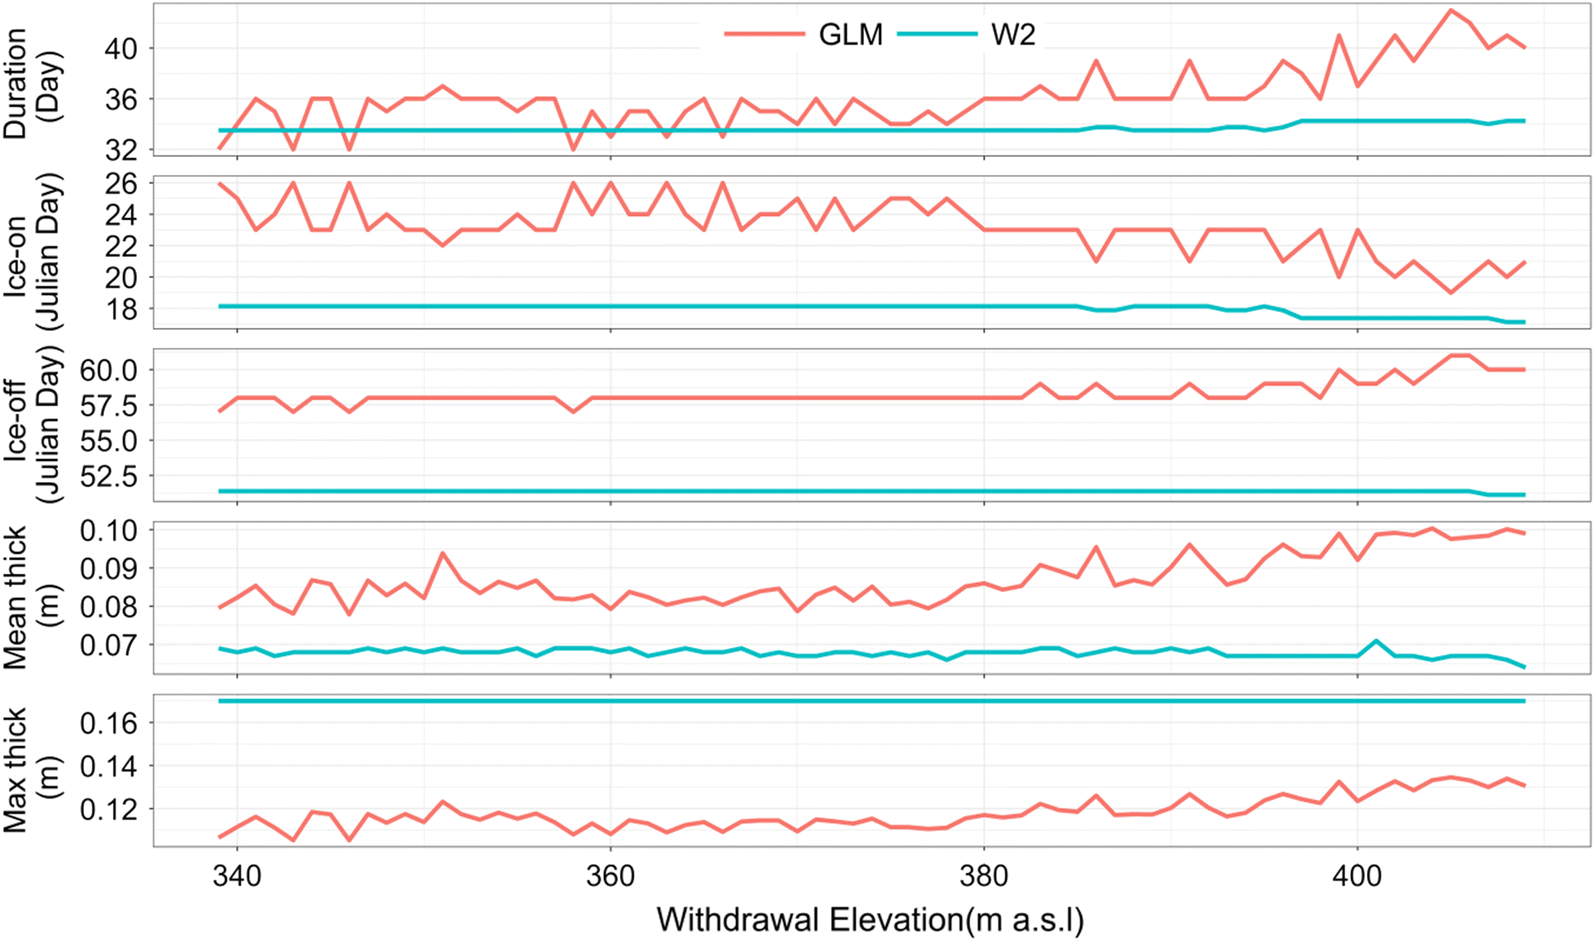 Variable withdrawal elevations as a management tool to